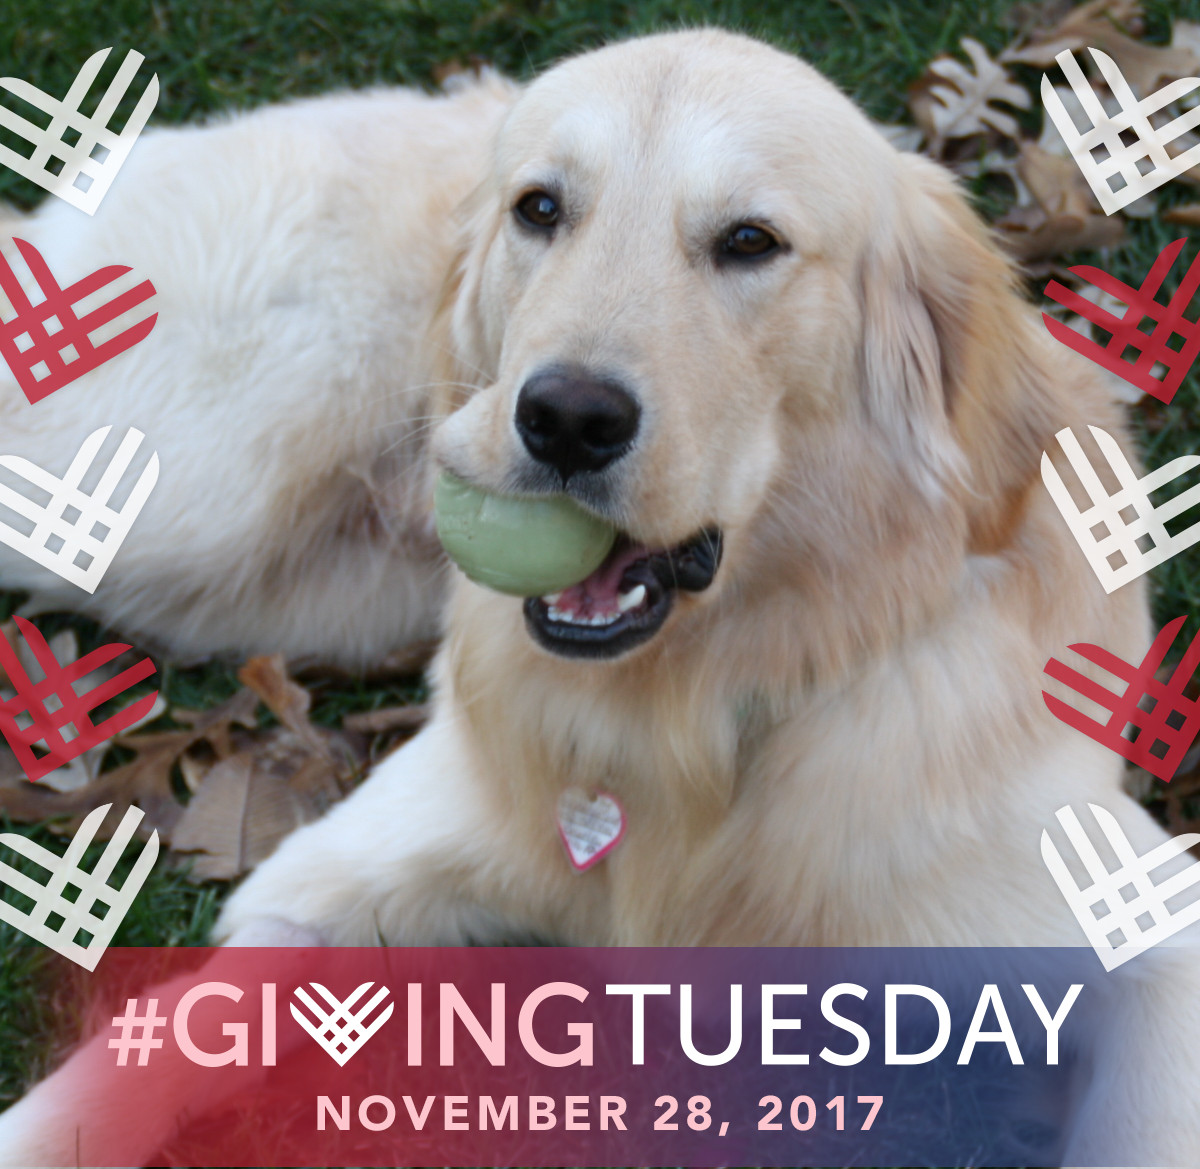 AGaG's #GivingTuesday Golden